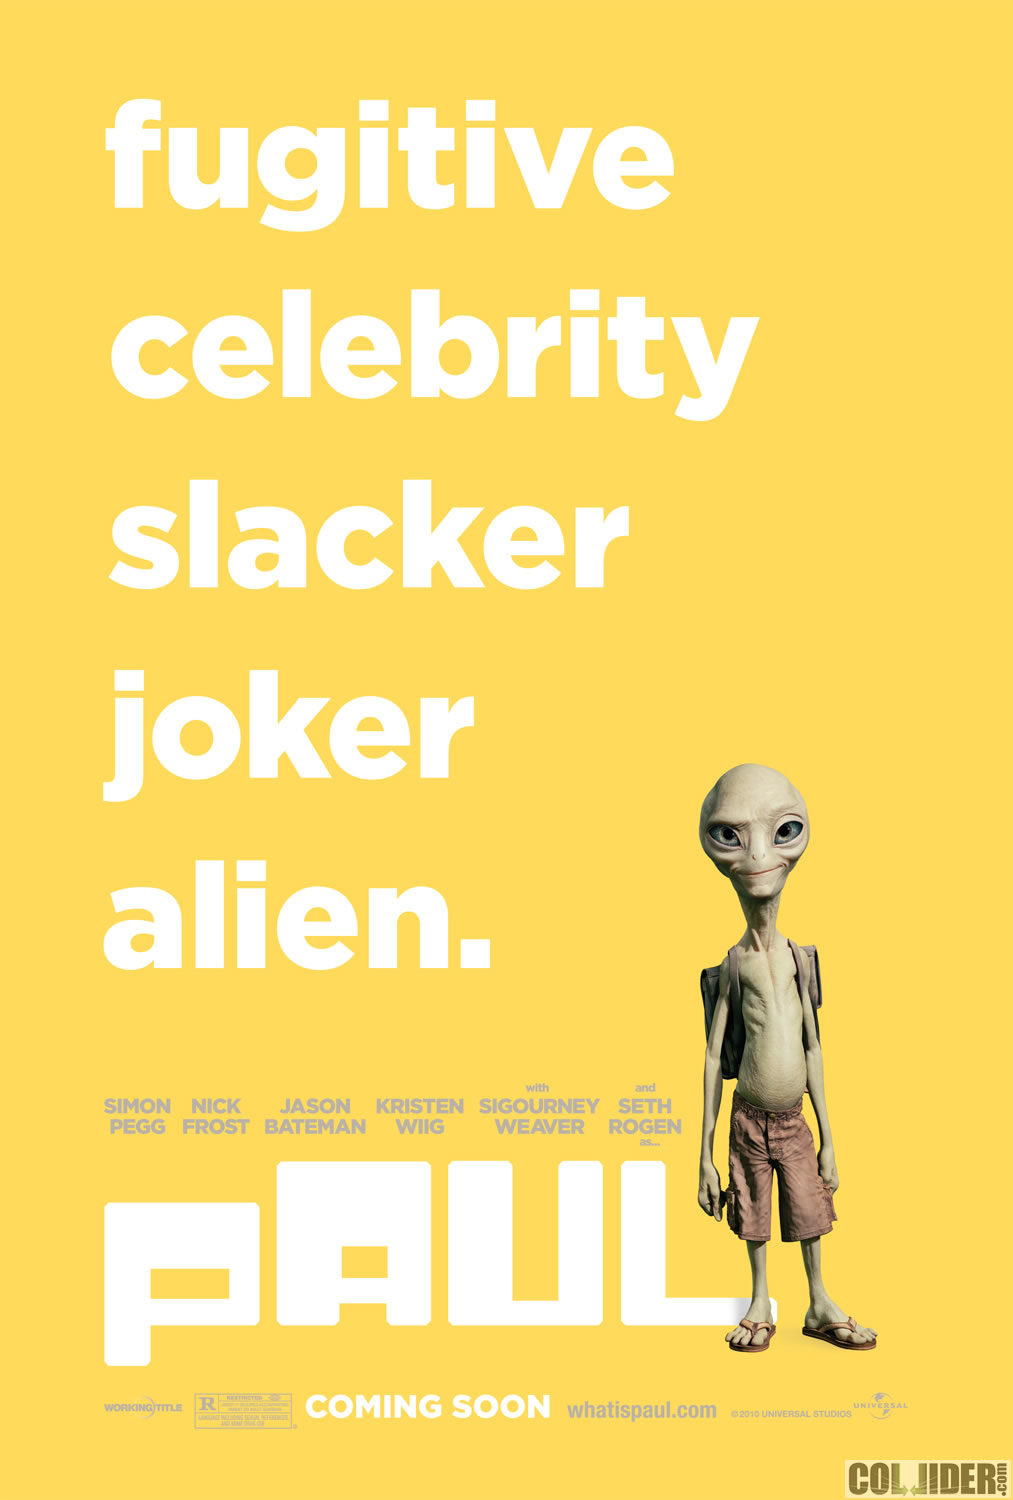 http://www.collider.com/wp-content/uploads/paul_movie_poster_tagged_001.jpg